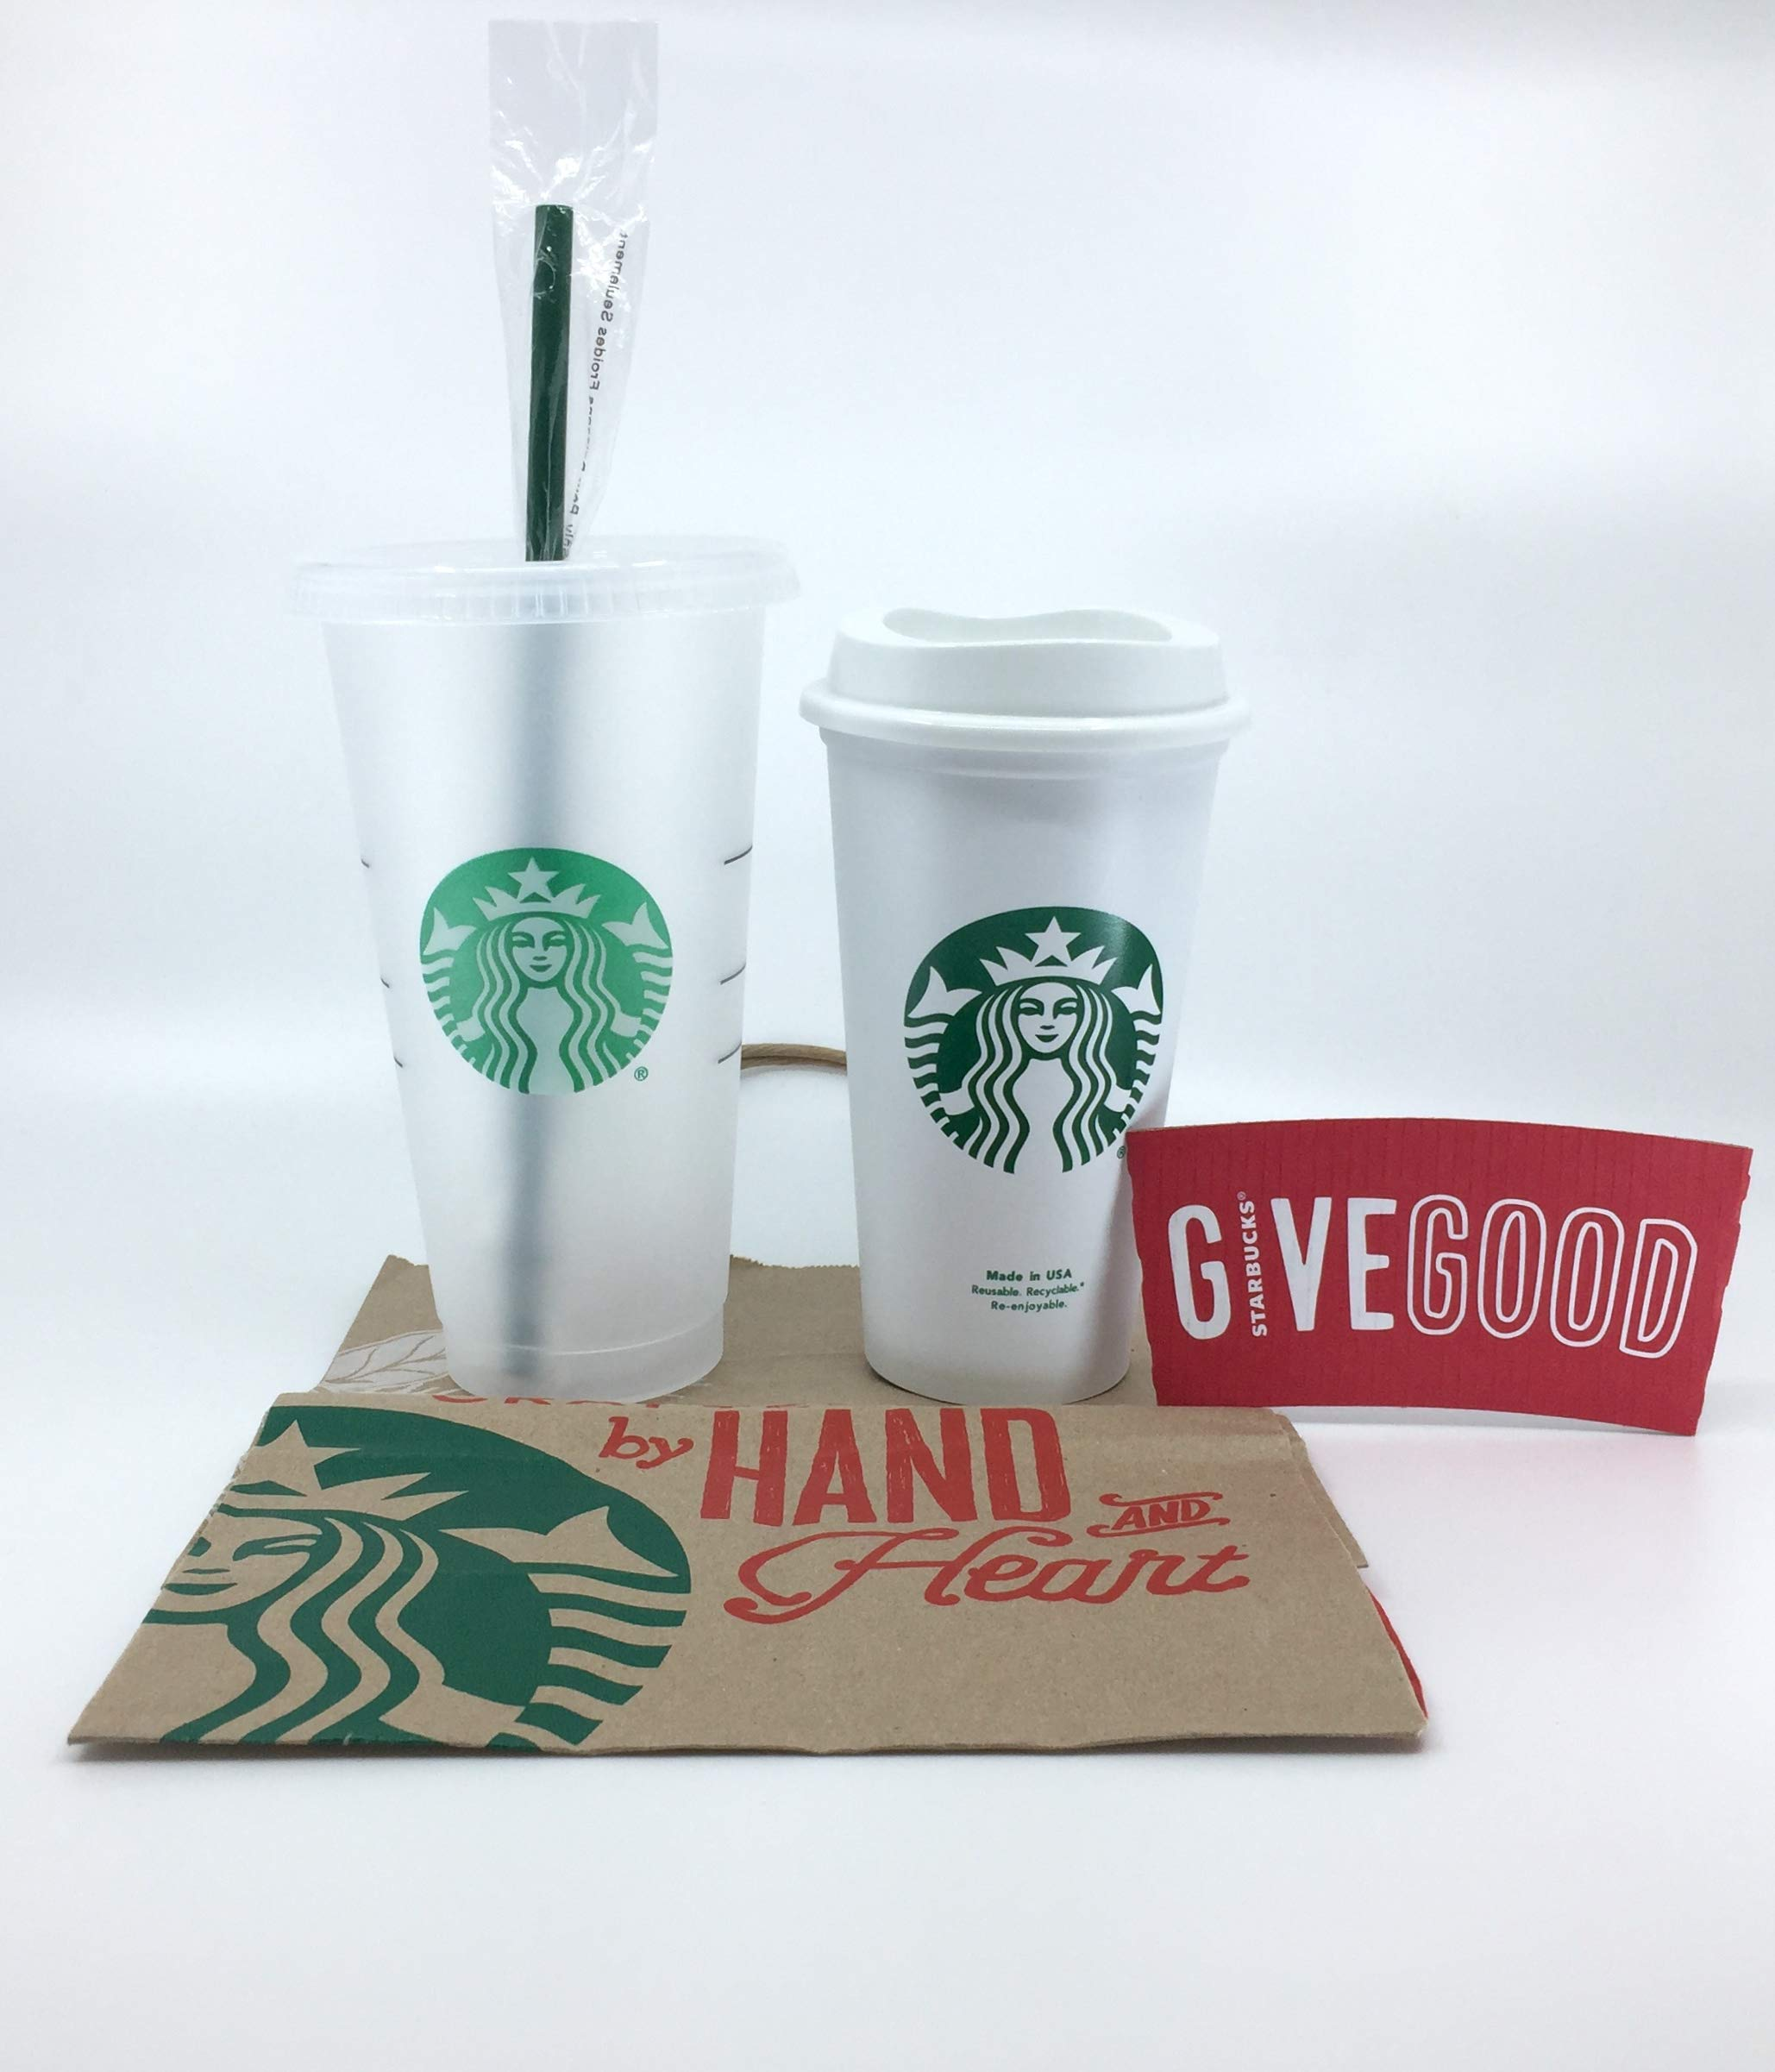 Starbucks Reusable Hard Plastic Venti 24 fl oz Frosted Ice COLD Drink Cup With Lid and Green Straw w/Stopper Limited Edition 2018 and Classic Siren Grande Cup for HOT and COLD Drinks Gift Bundle